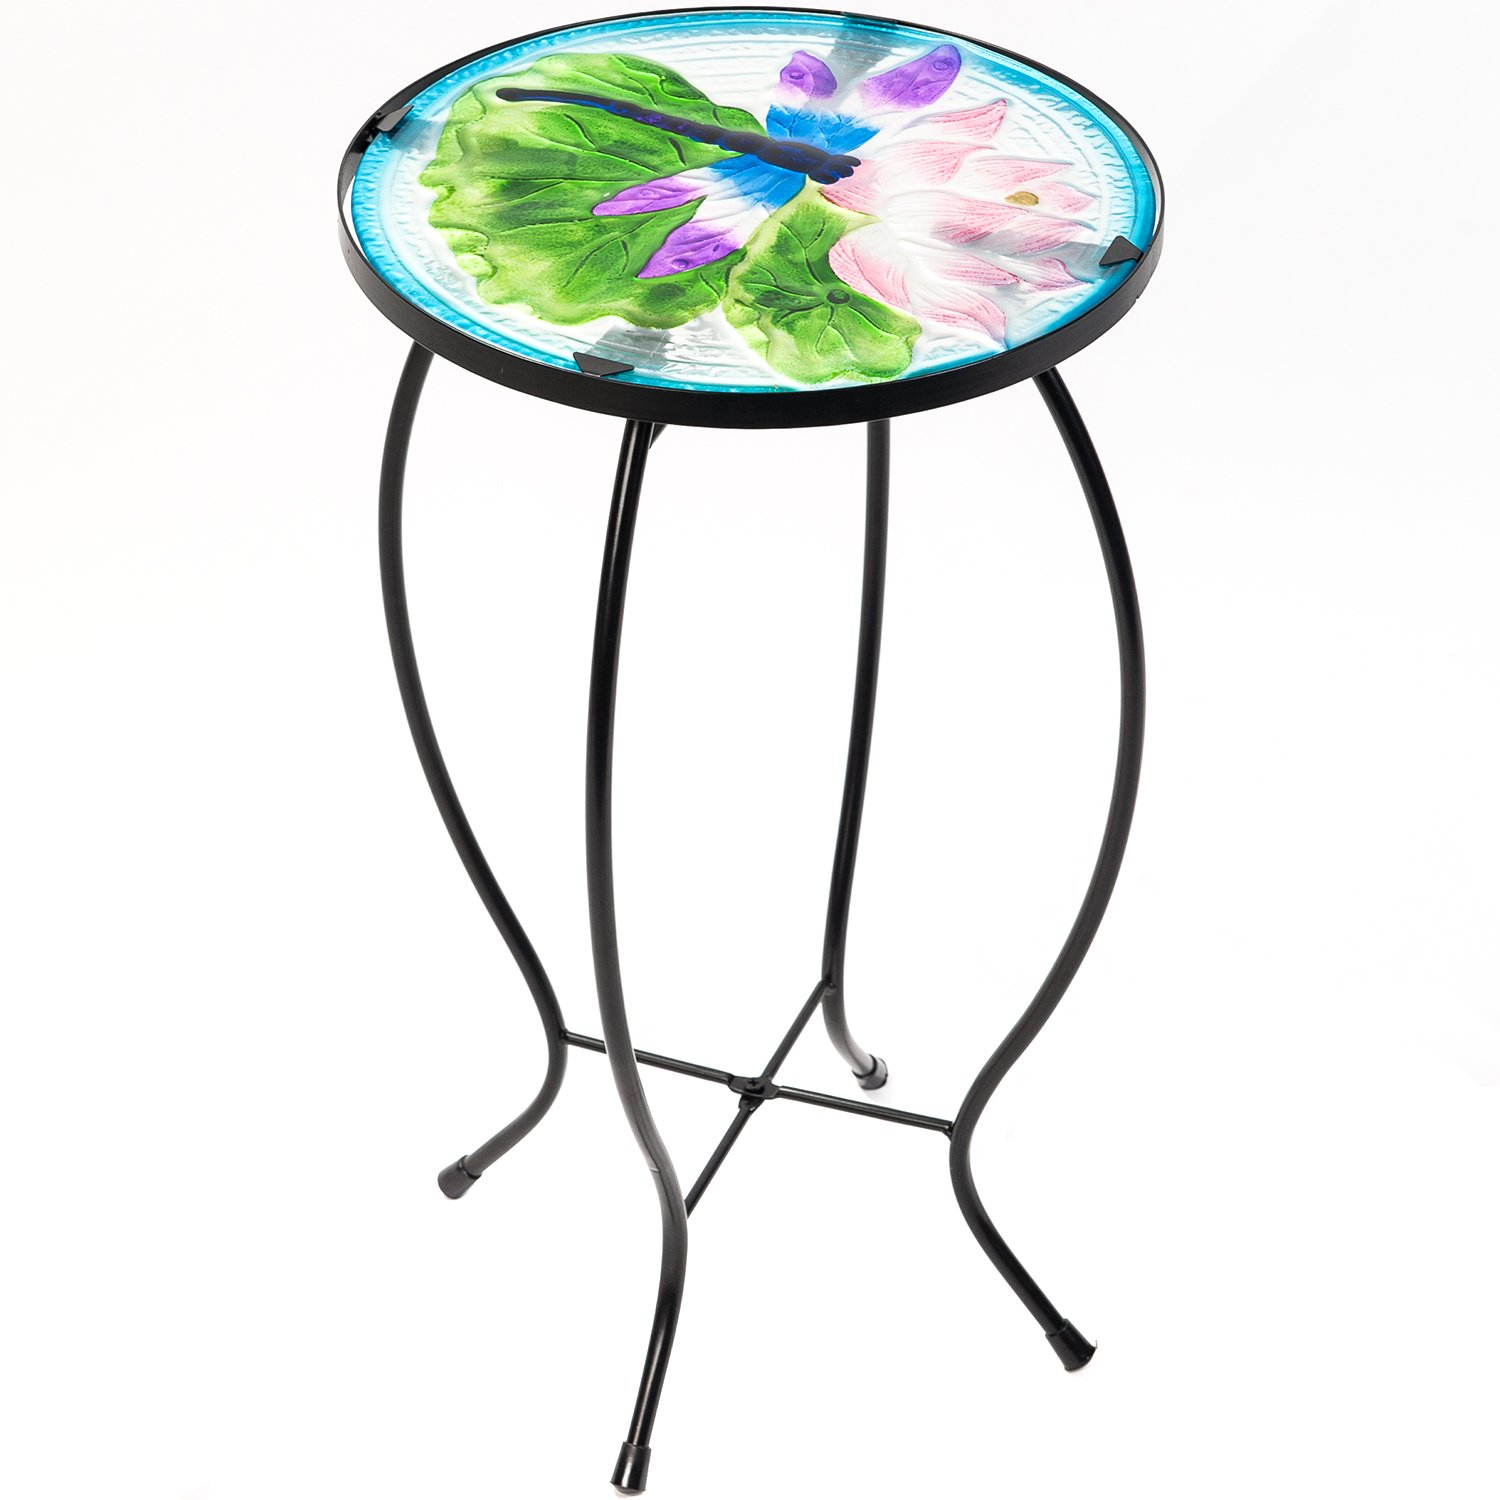 cedar home side table outdoor garden patio metal accent butterfly glass desk with round hand painted blue stool trestle bench target unique decor decorative wine rack long console